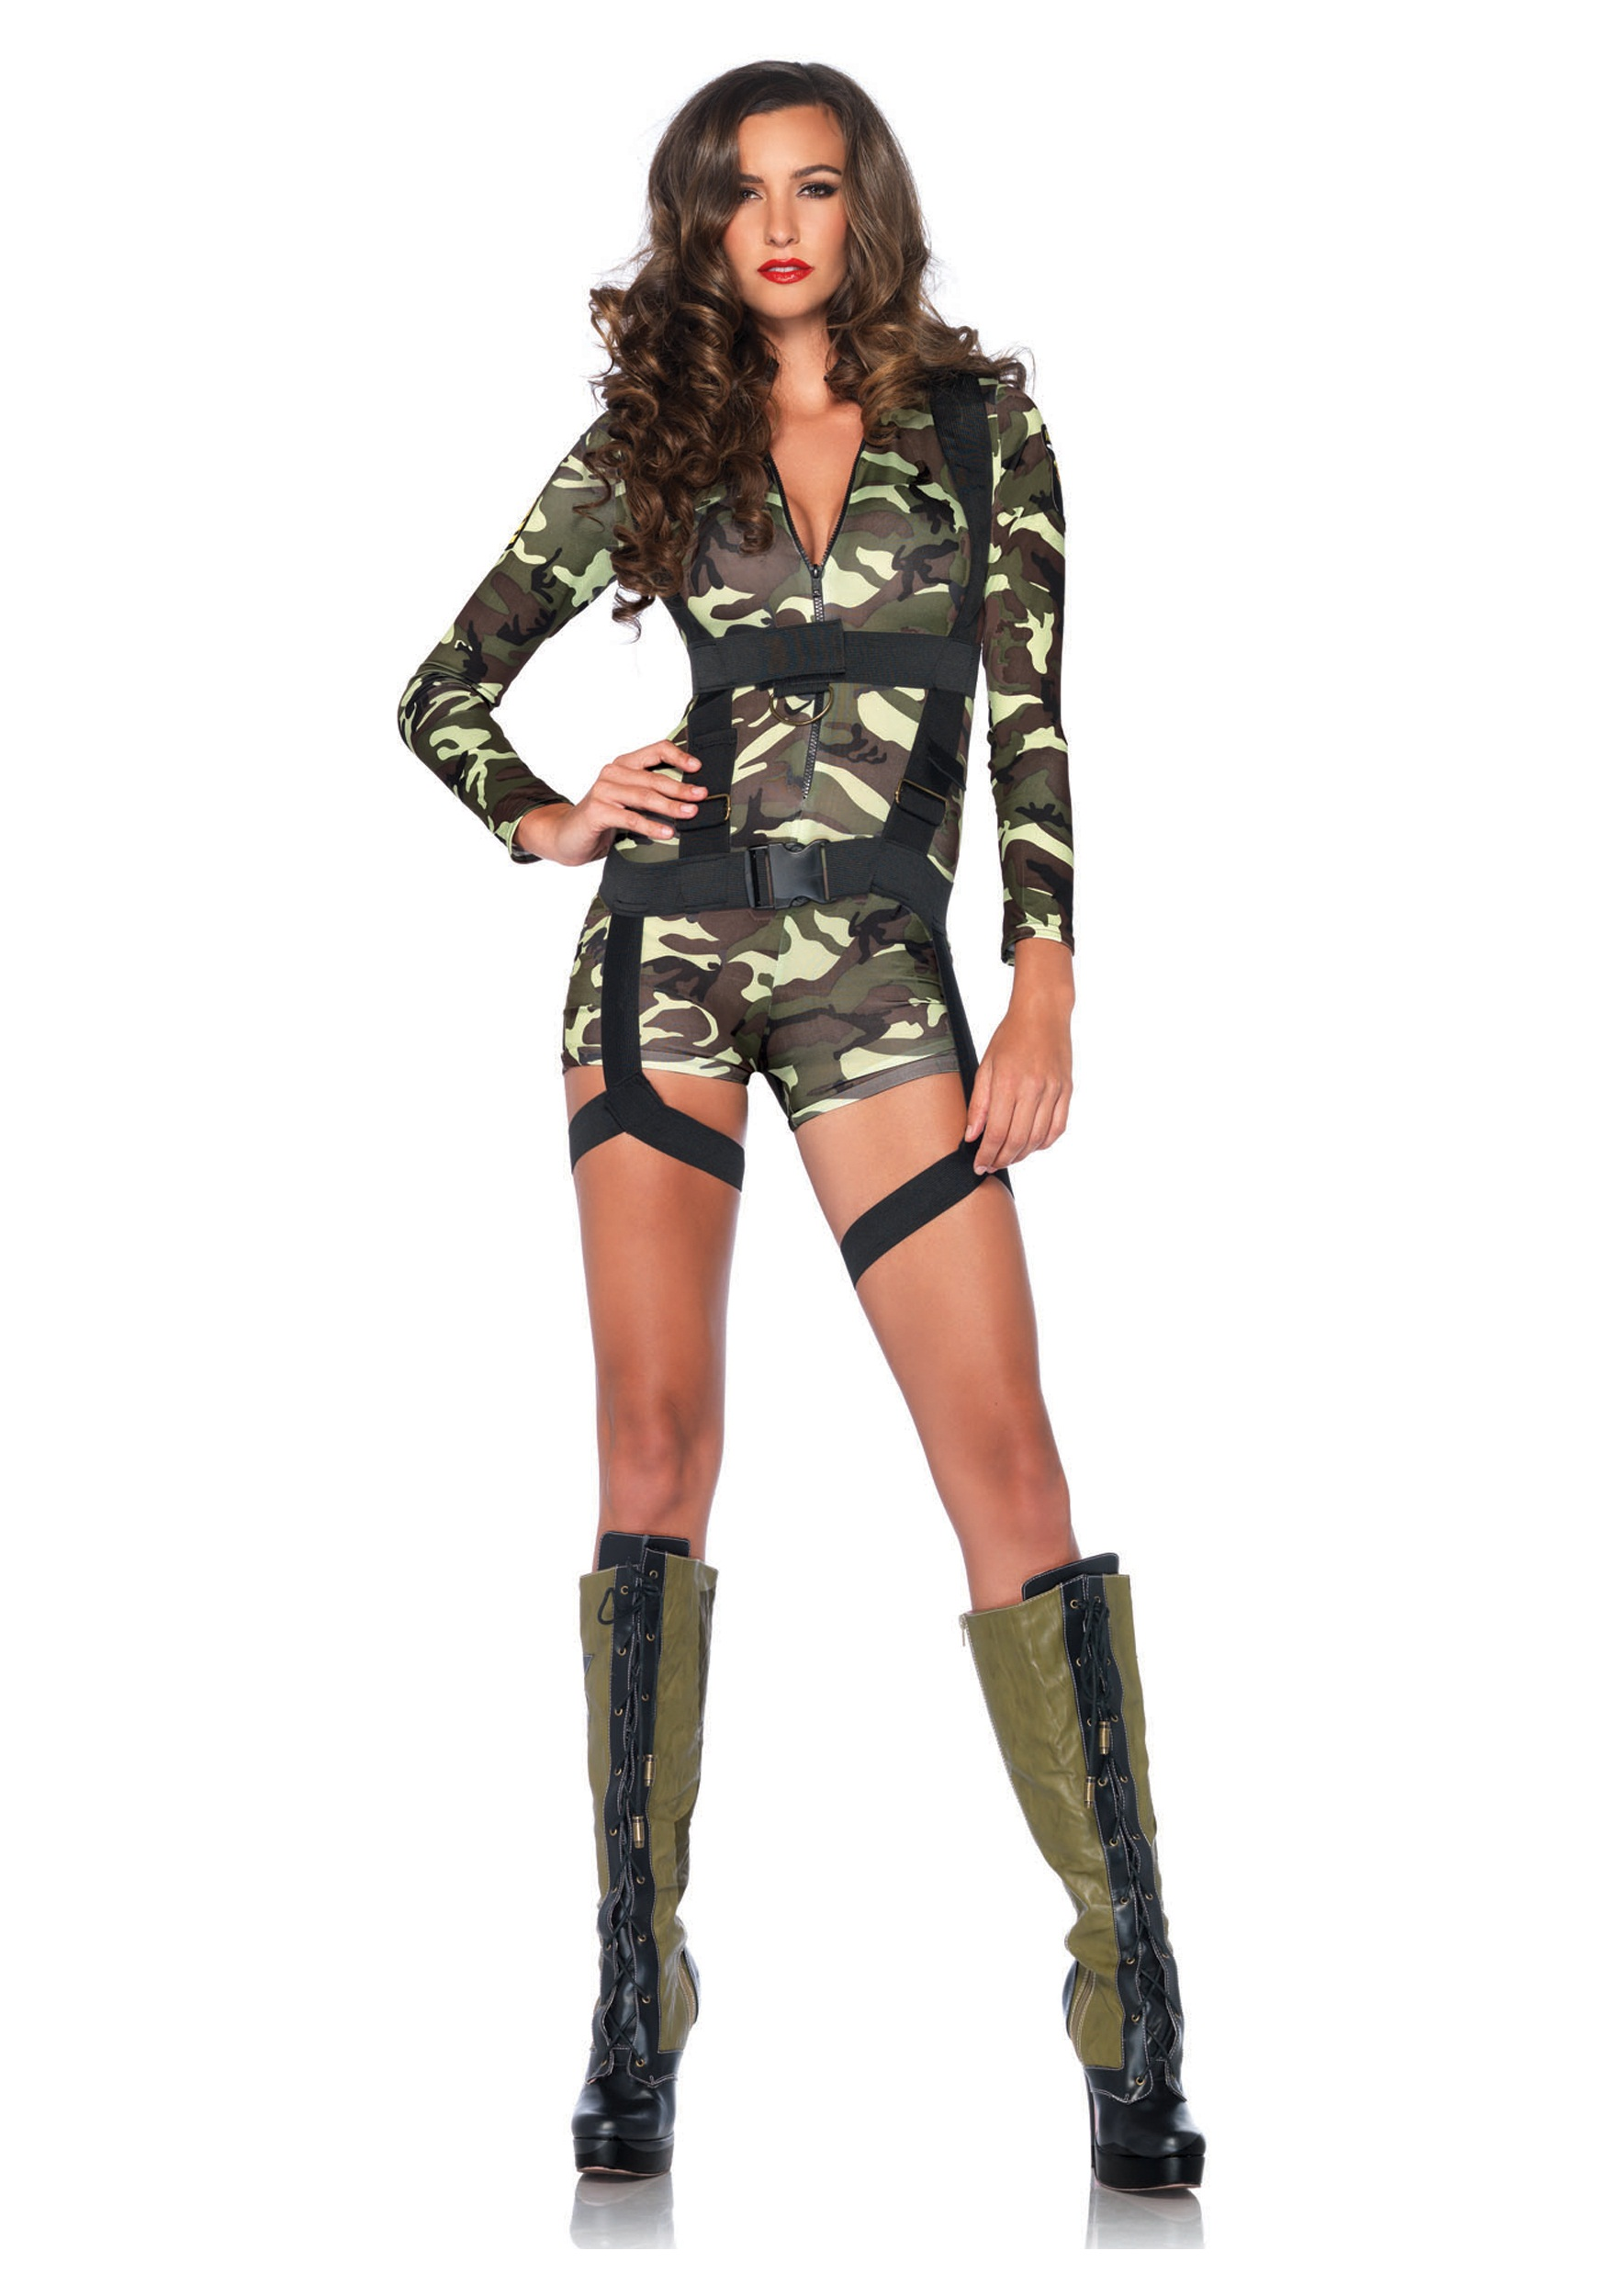 Women's Goin' Commando Army Costume